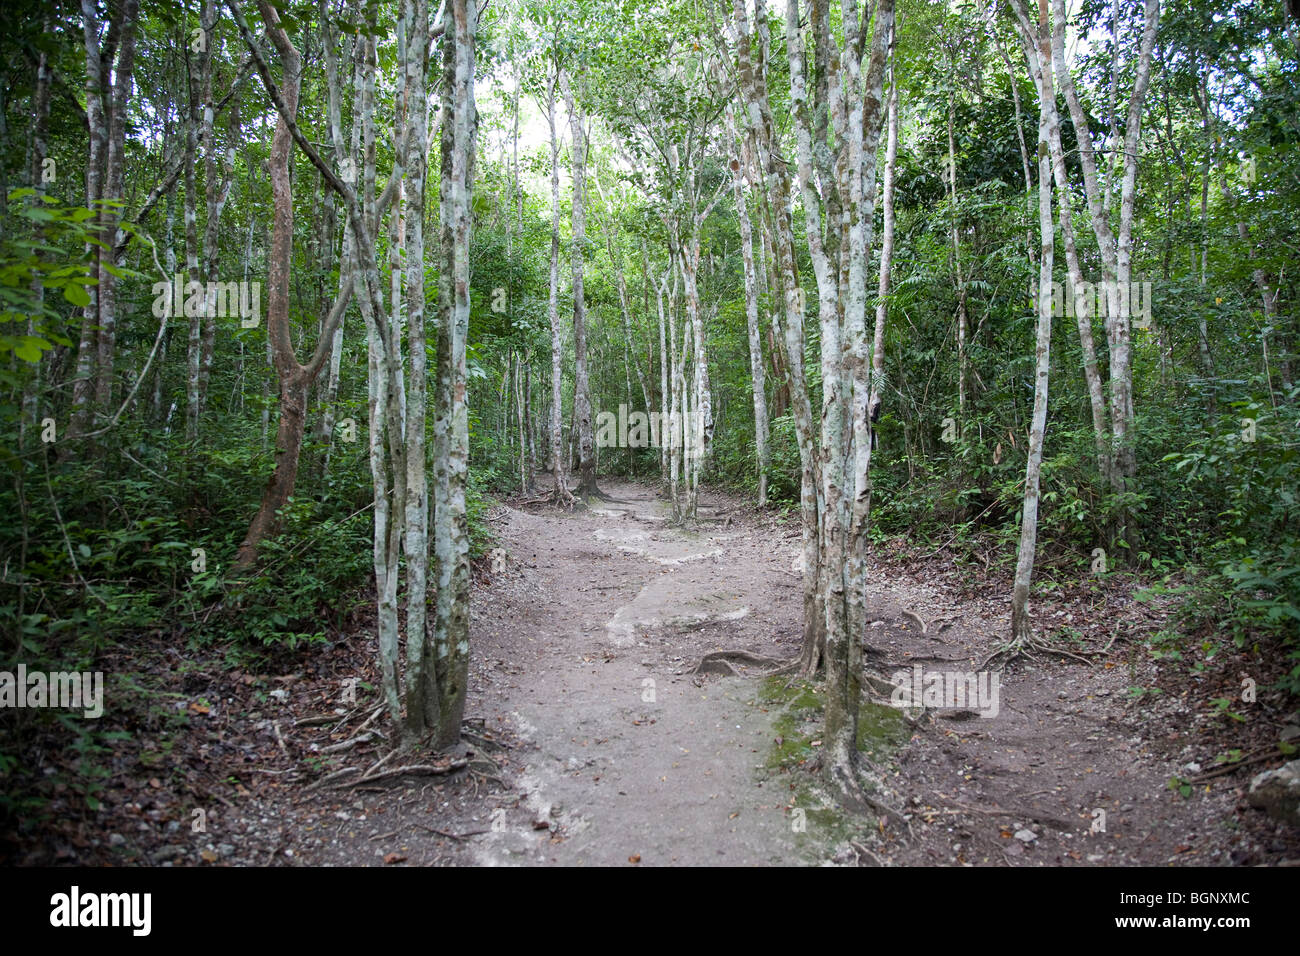 Xpujil Maya Ruins archaeology site, Campeche Mexico. - Stock Image